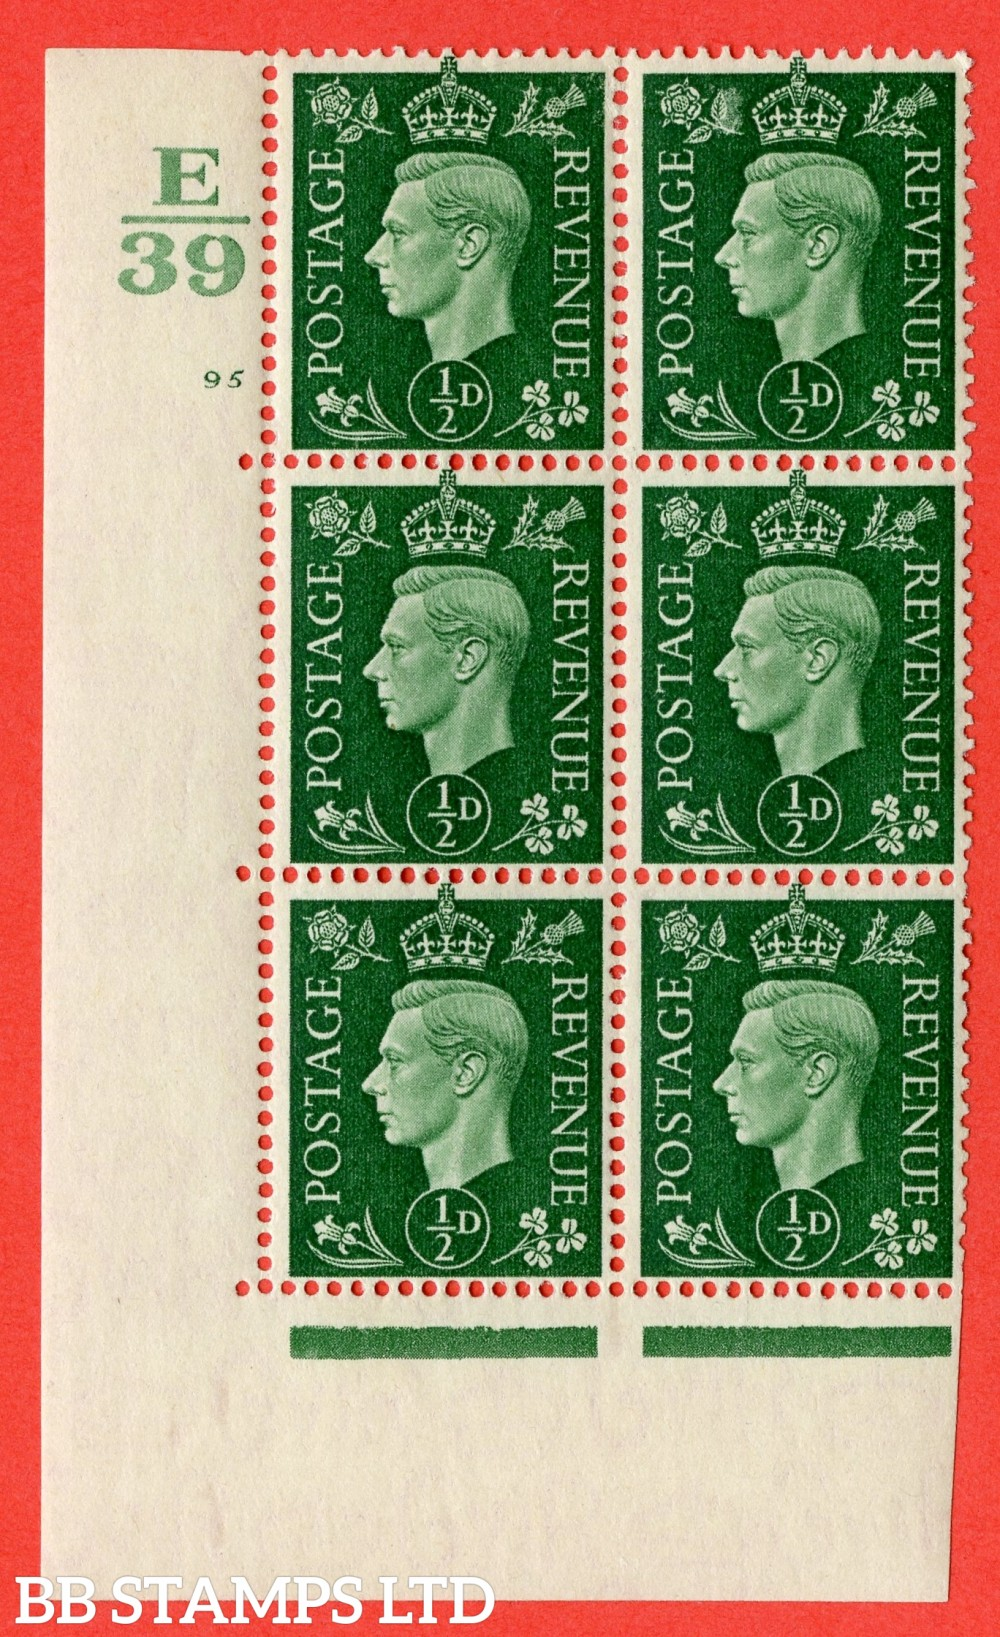 "SG. 462. Q1. ½d Green. A fine lightly mounted mint "" Control E39 cylinder 95 no dot "" block of 6 with perf type 5 E/I with marginal rule."